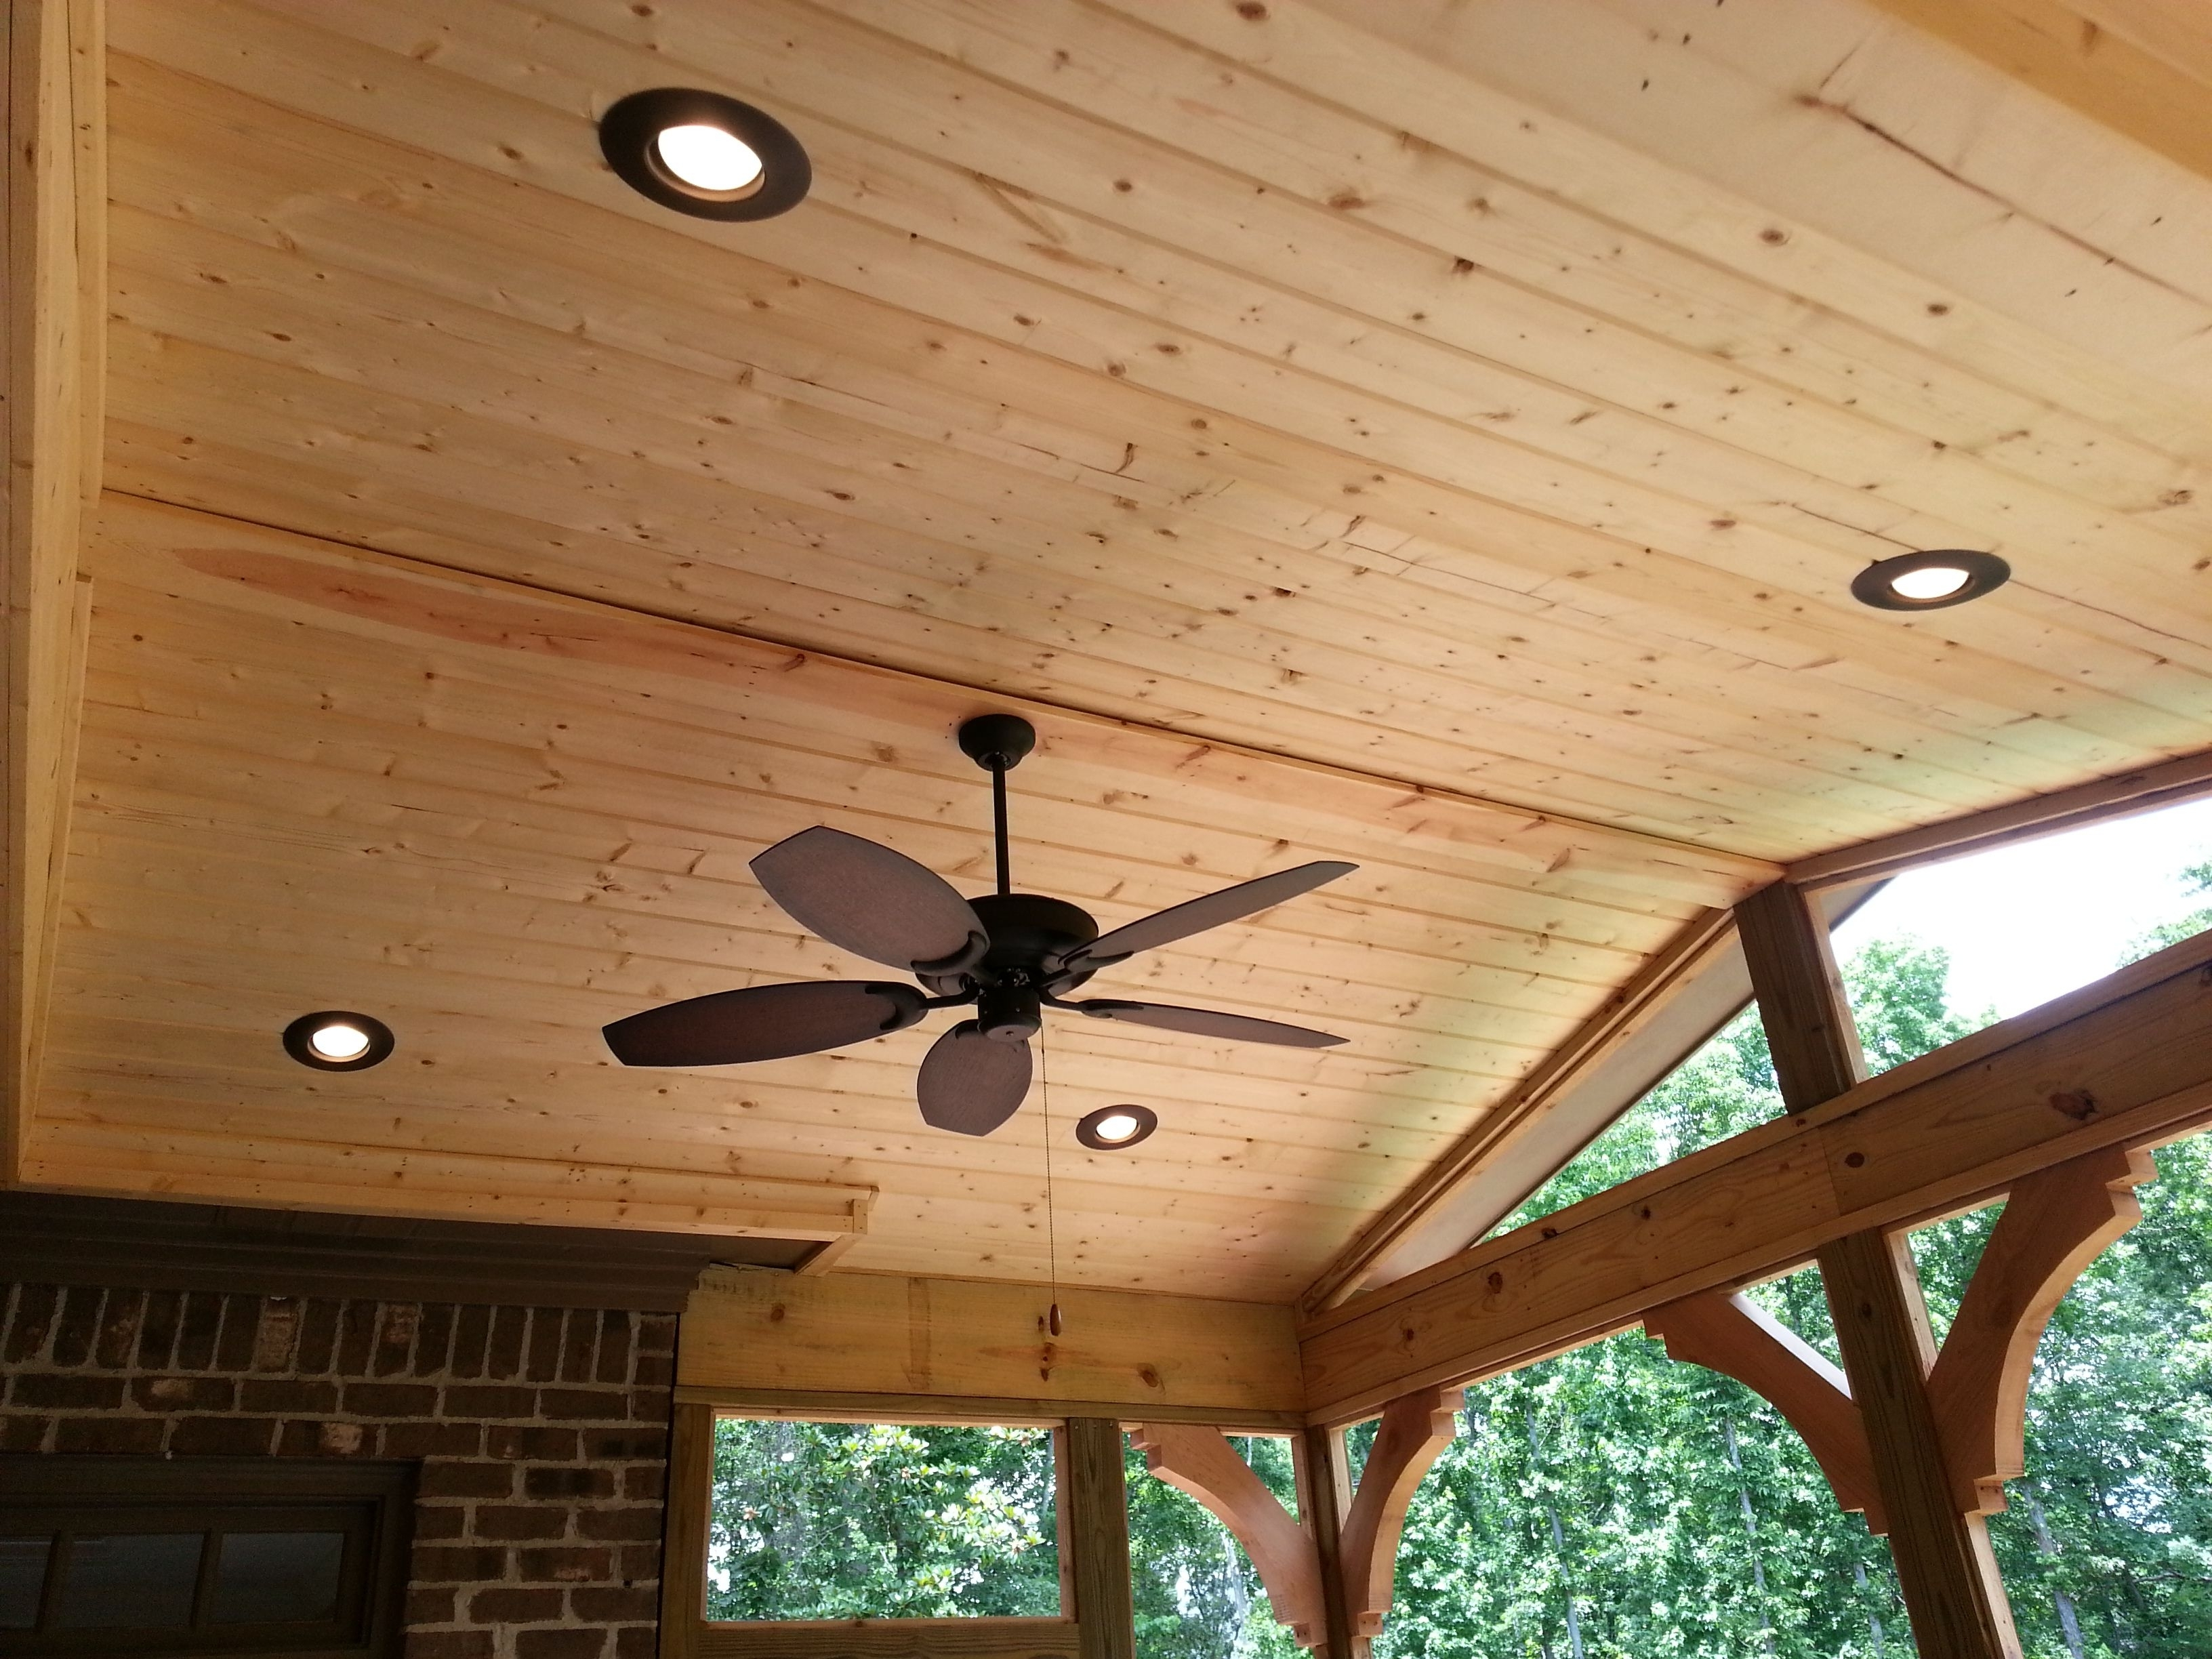 Most Up To Date Outdoor Ceiling Fans For Decks Inside Finished Ceiling With Ceiling Fan And Can Lights – Design Ideas (View 11 of 20)